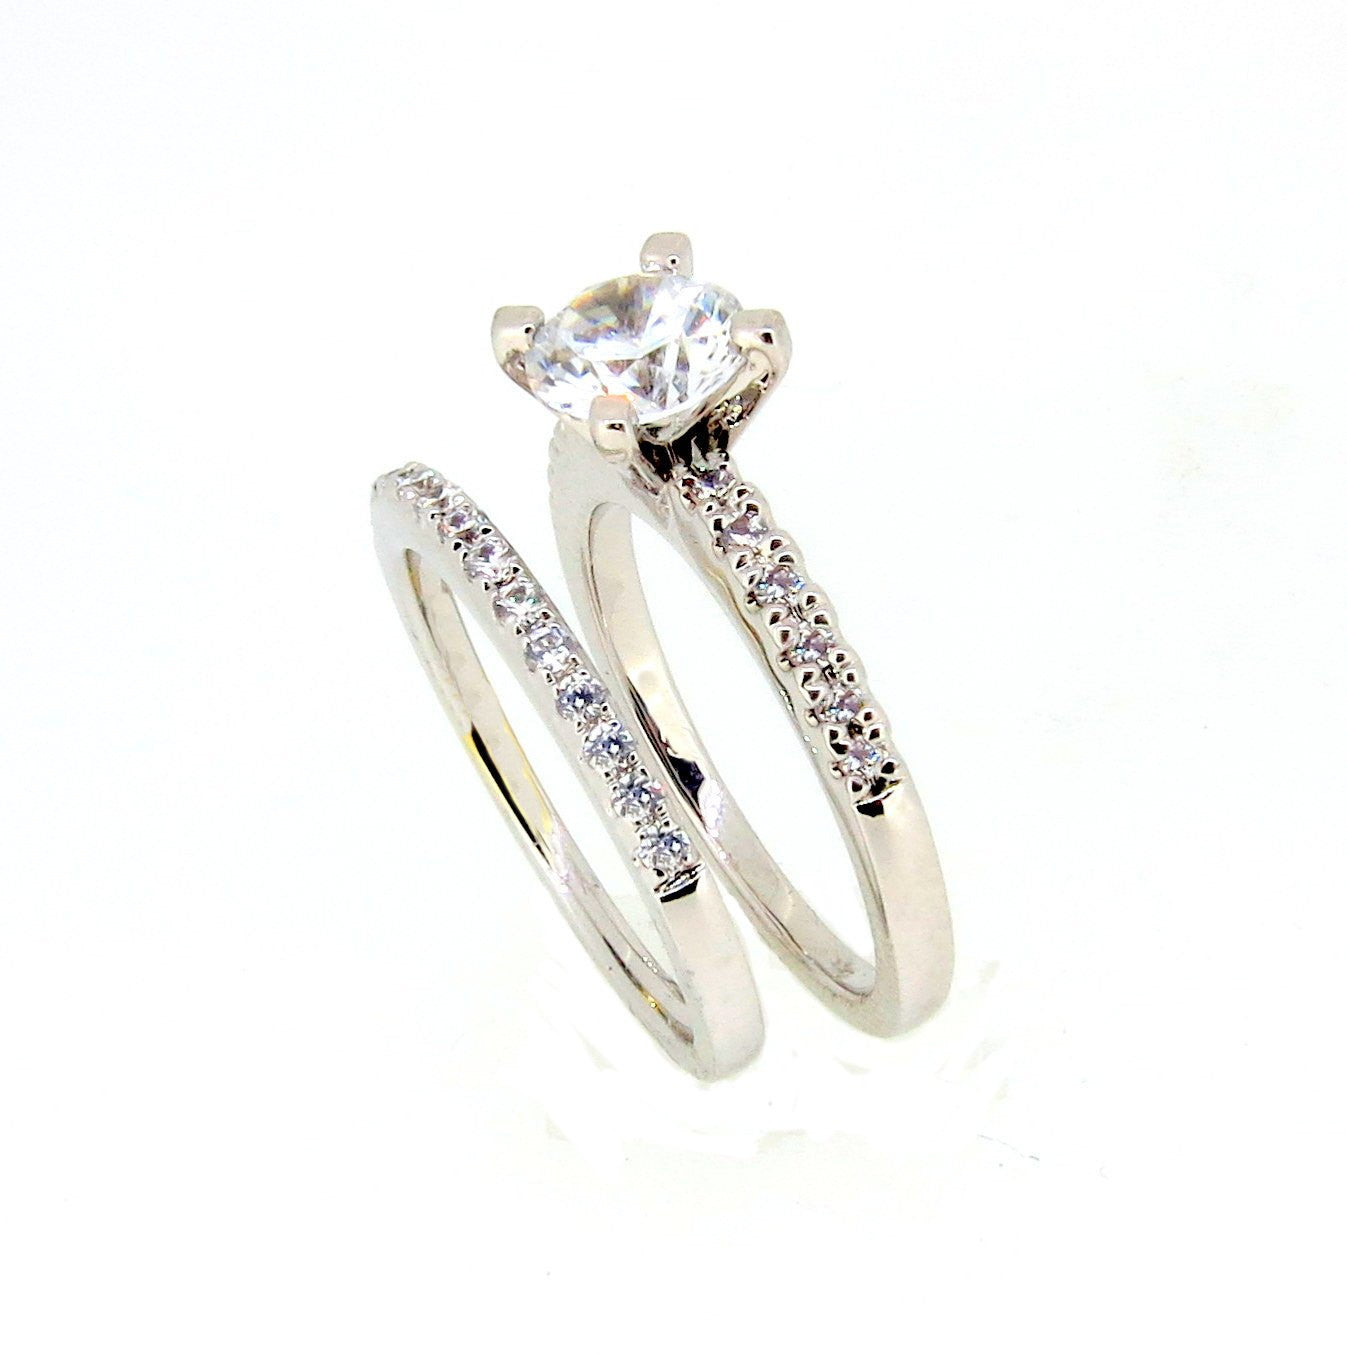 1 Carat Forever Brilliant Moissanite Engagement / Wedding Set, With .50 Carat Diamonds, Anniversary Ring Set - FBJRBS901